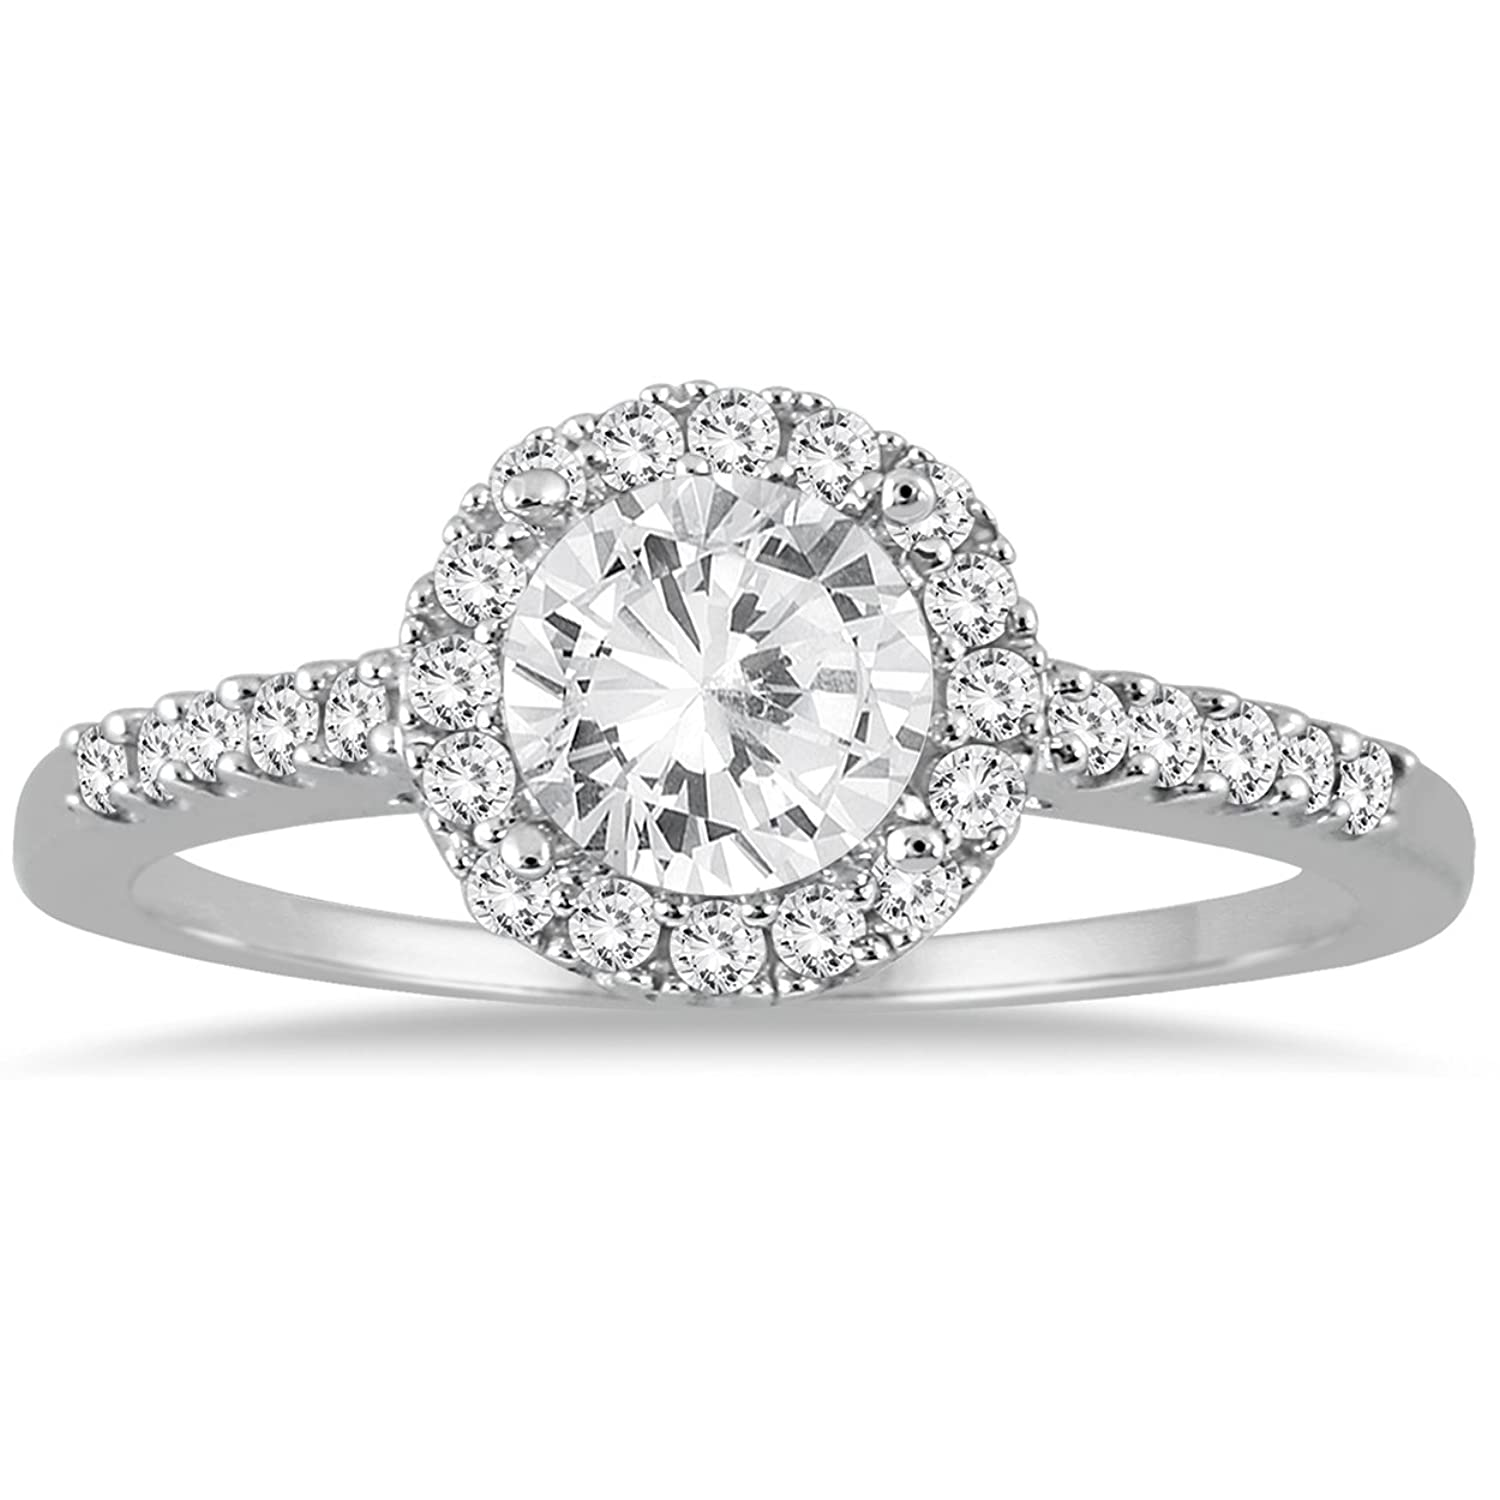 AGS Certified 1 Carat TW Diamond Halo Engagement Ring in 10K White